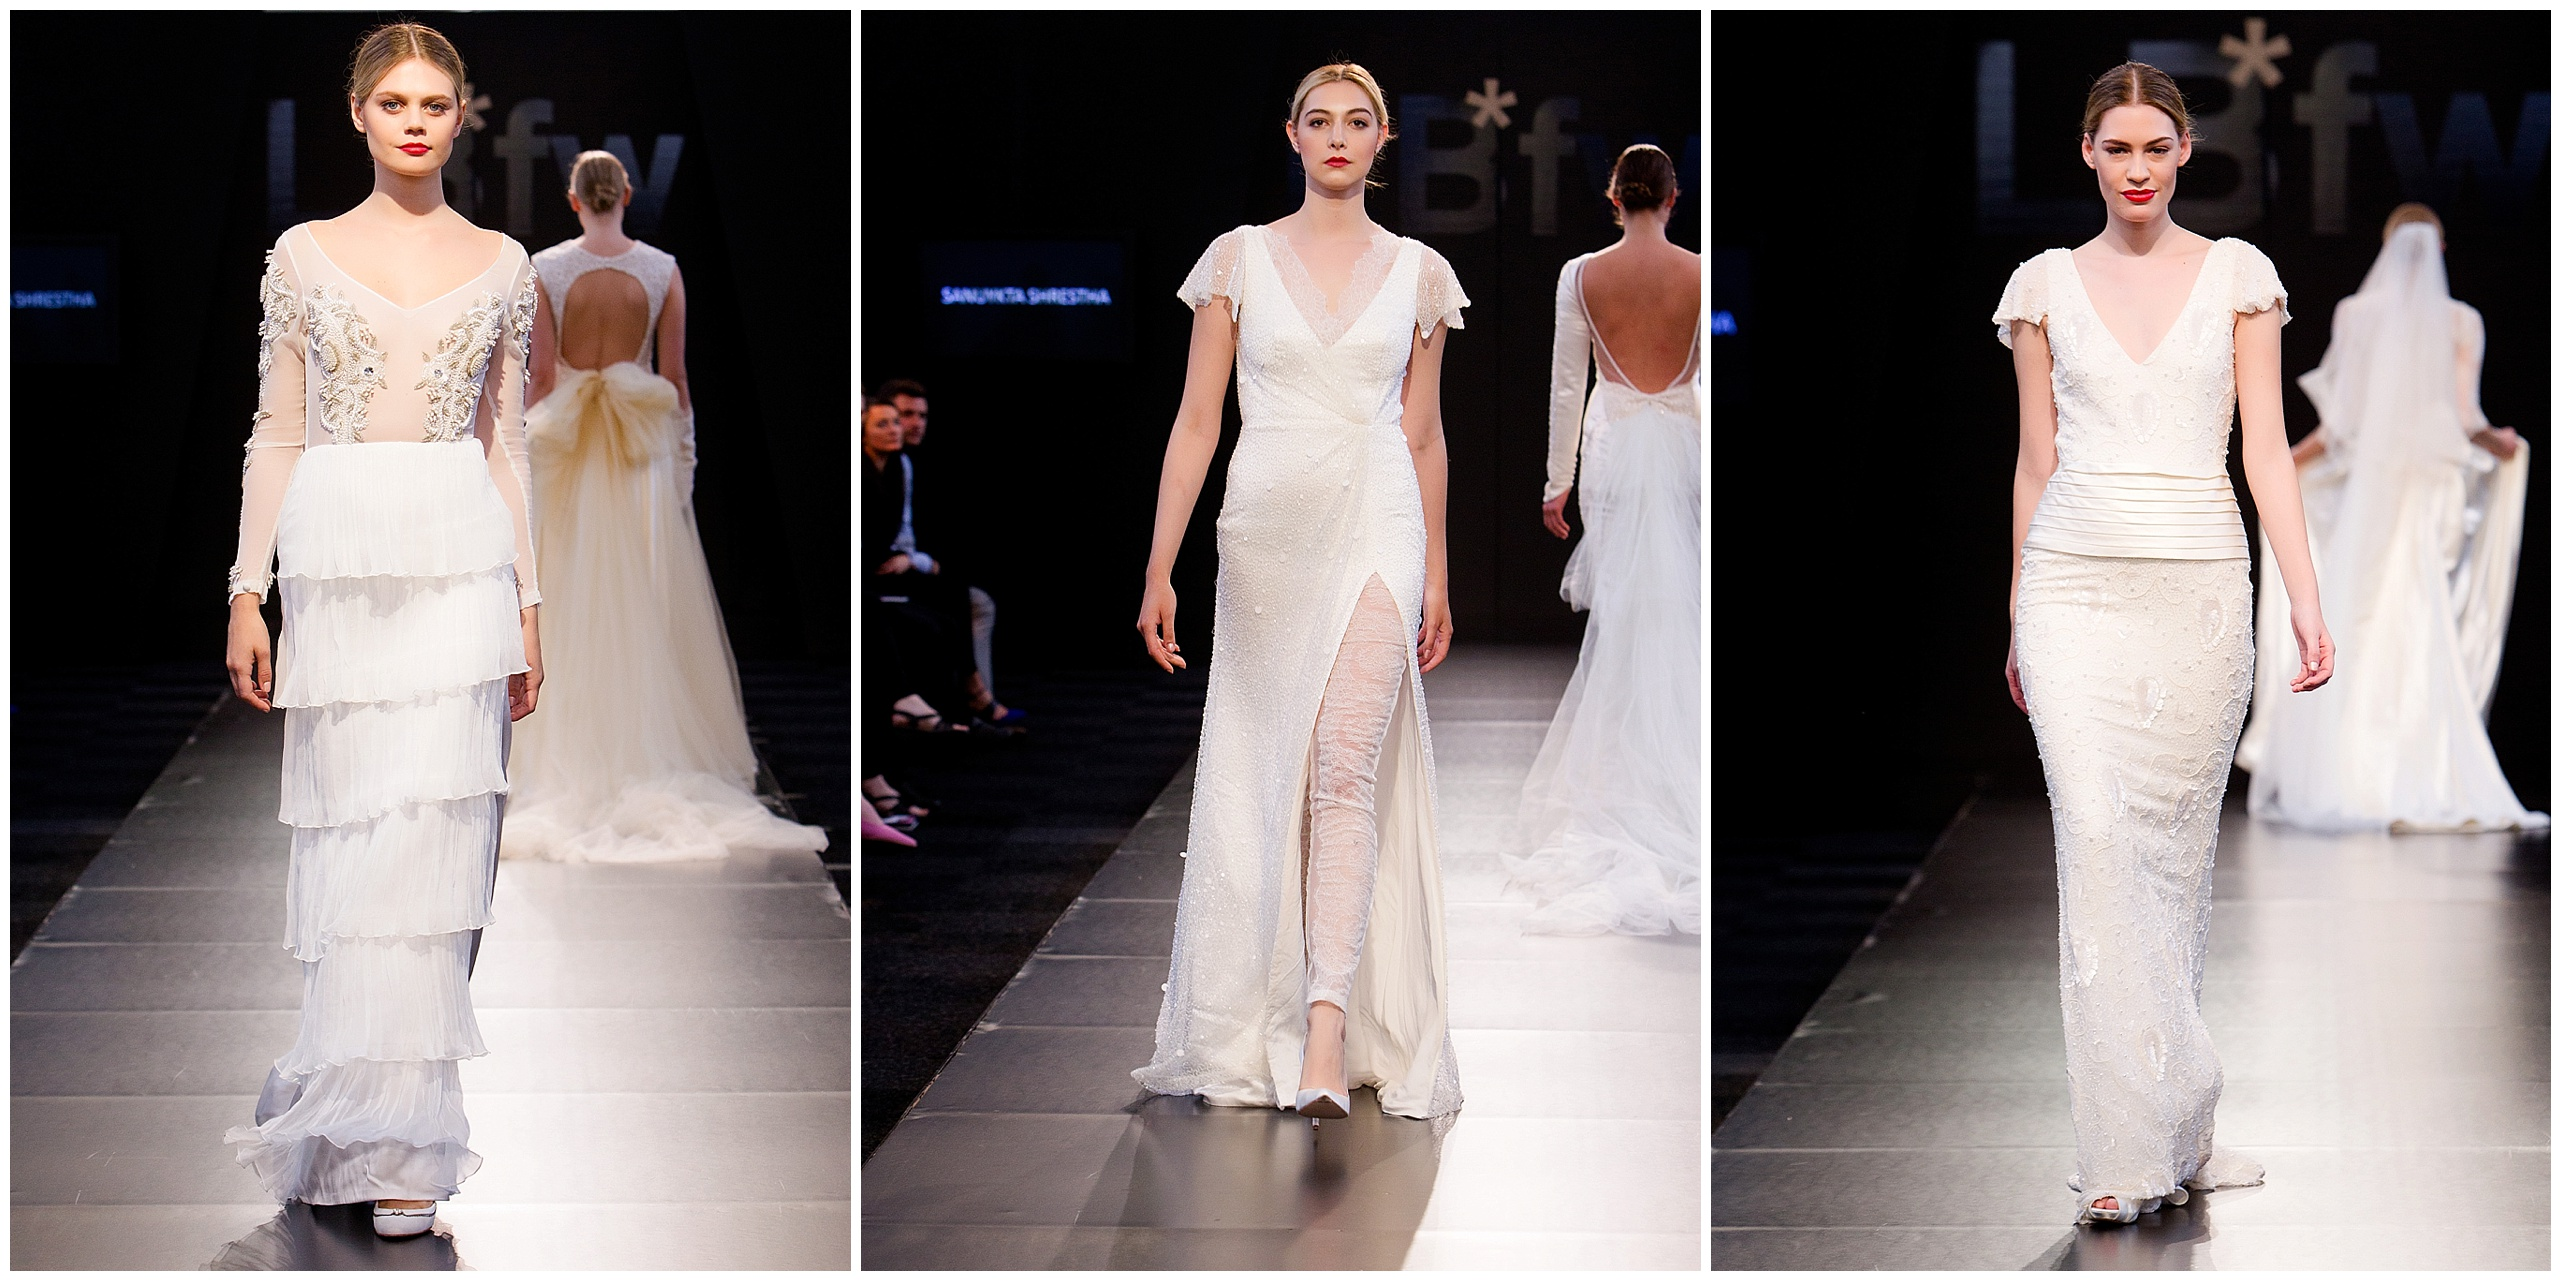 London Bridal Fashion Week: Designer Collections